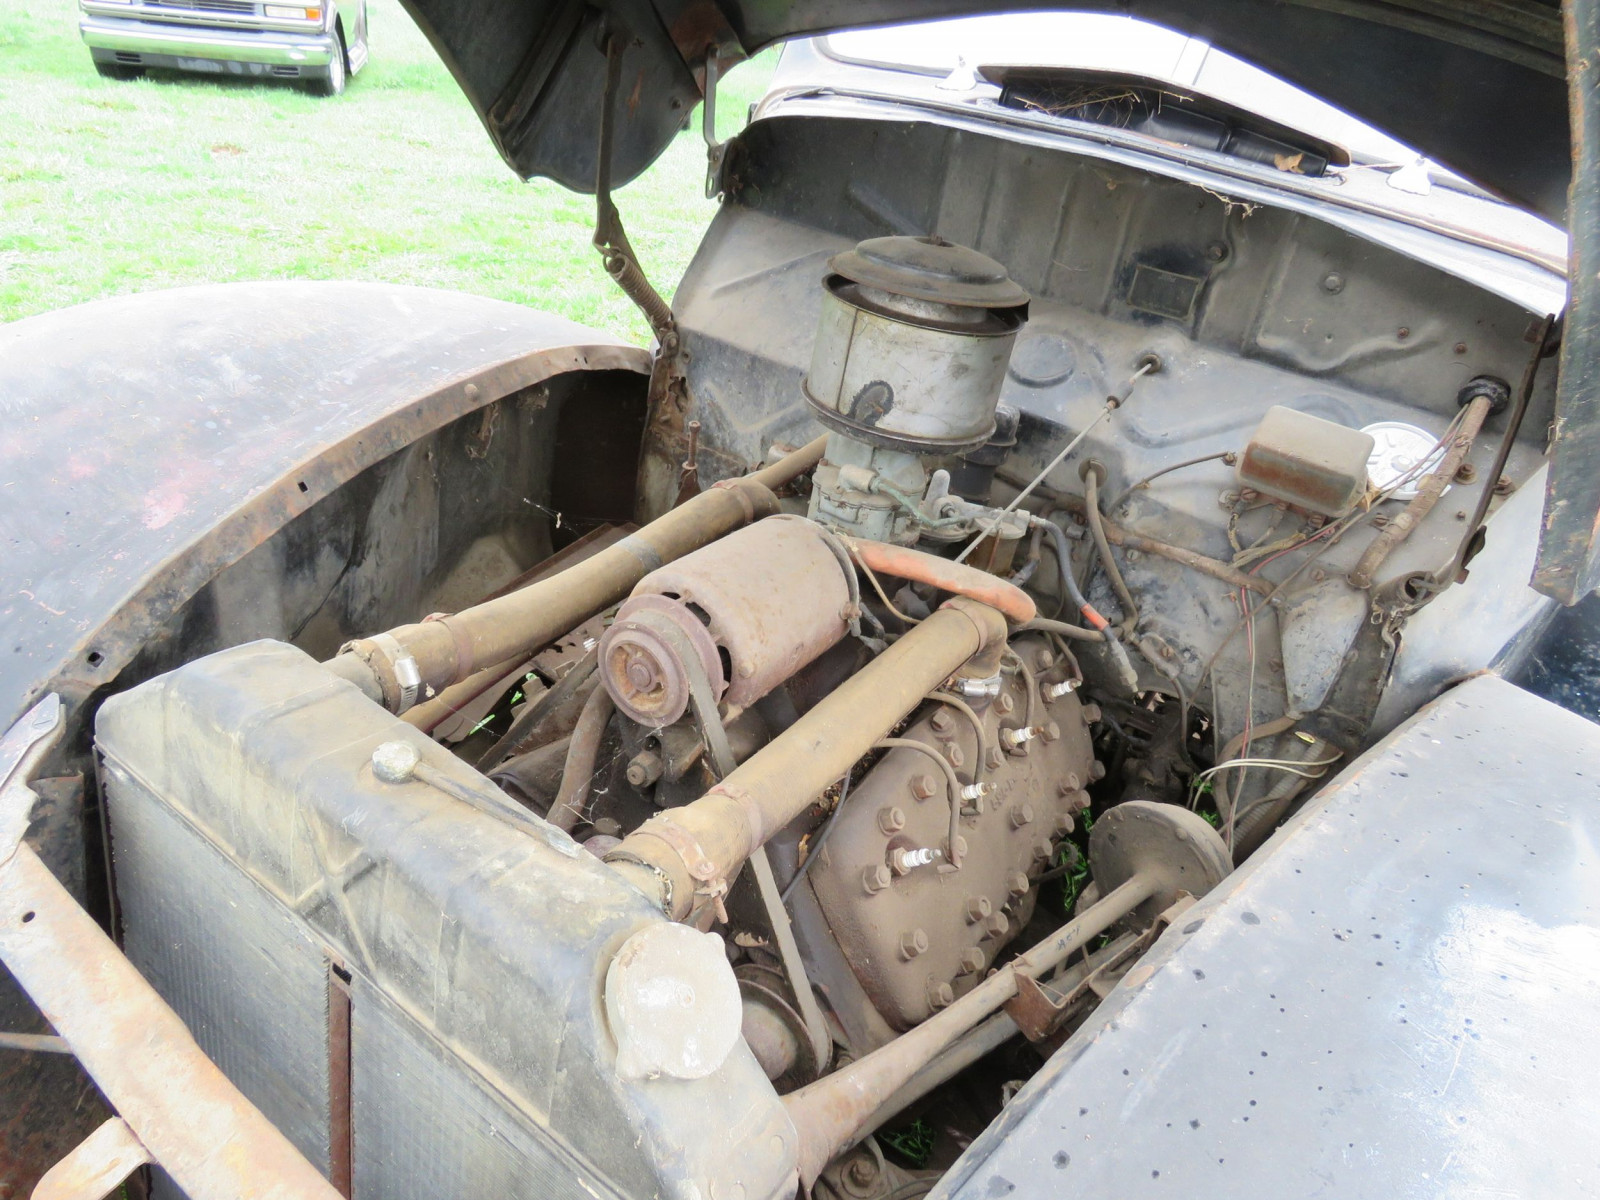 1940 Ford 2dr Sedan for Rod or Restore - Image 9